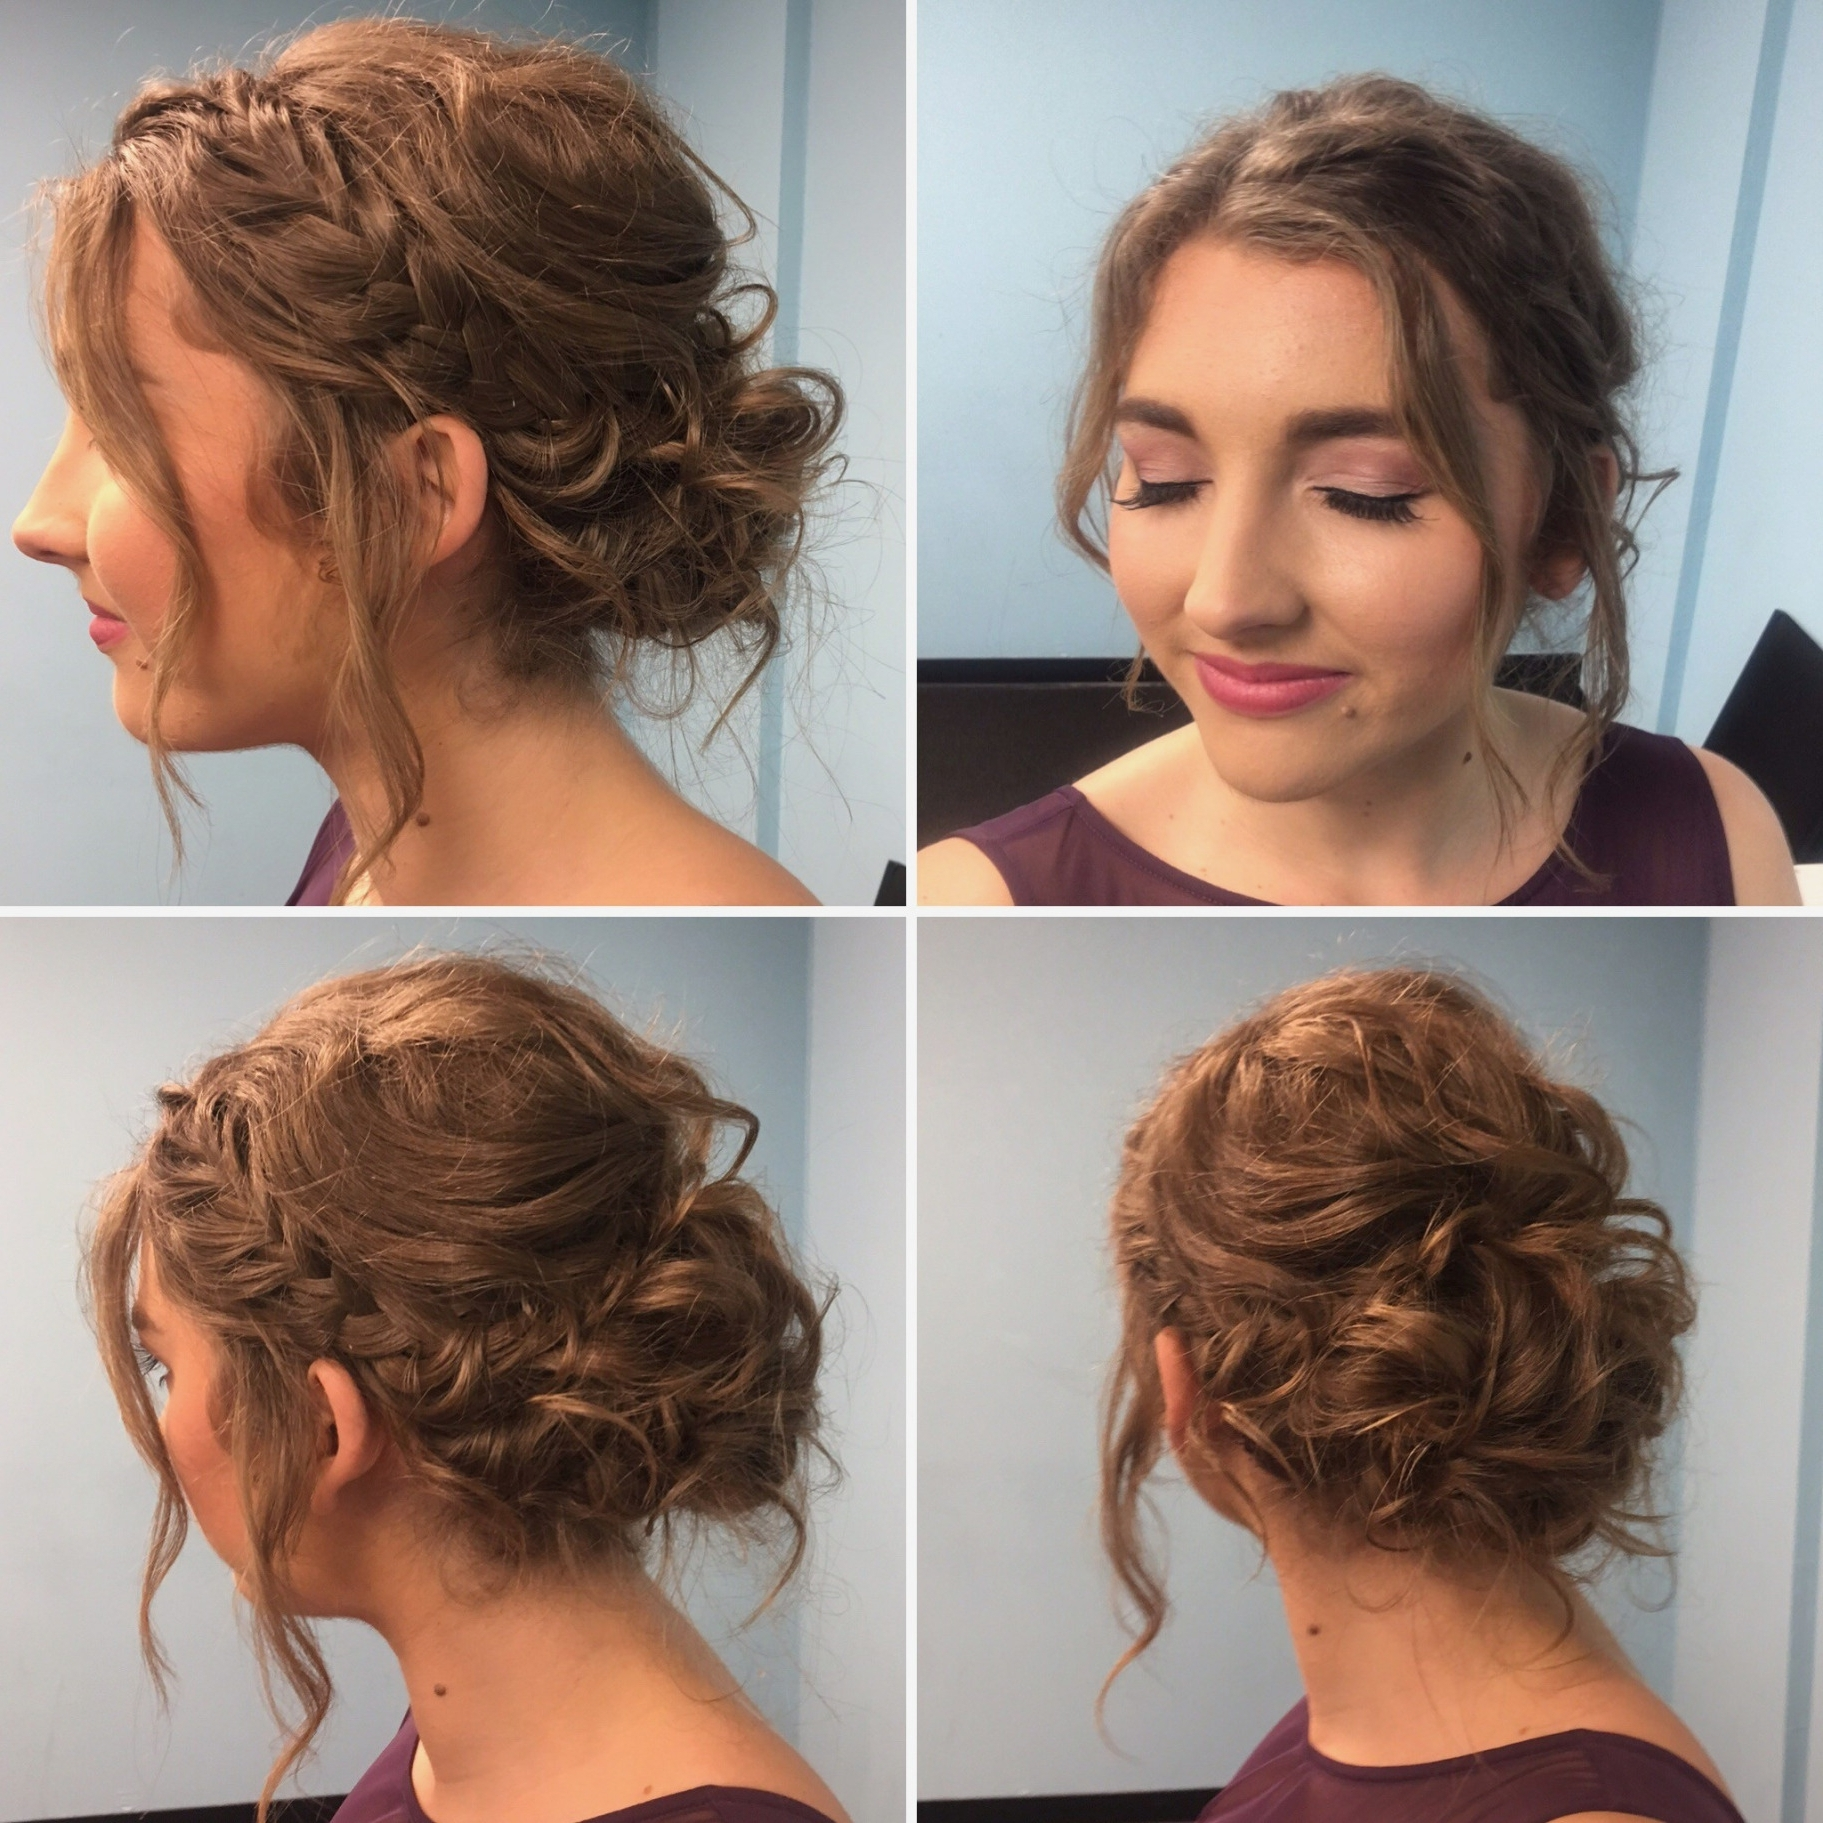 Well Known Wedding Hairstyles For Bridesmaids With Short Hair With Short Hairstyles : New Bridesmaid Hairstyles For Short Hair Pics (View 14 of 15)